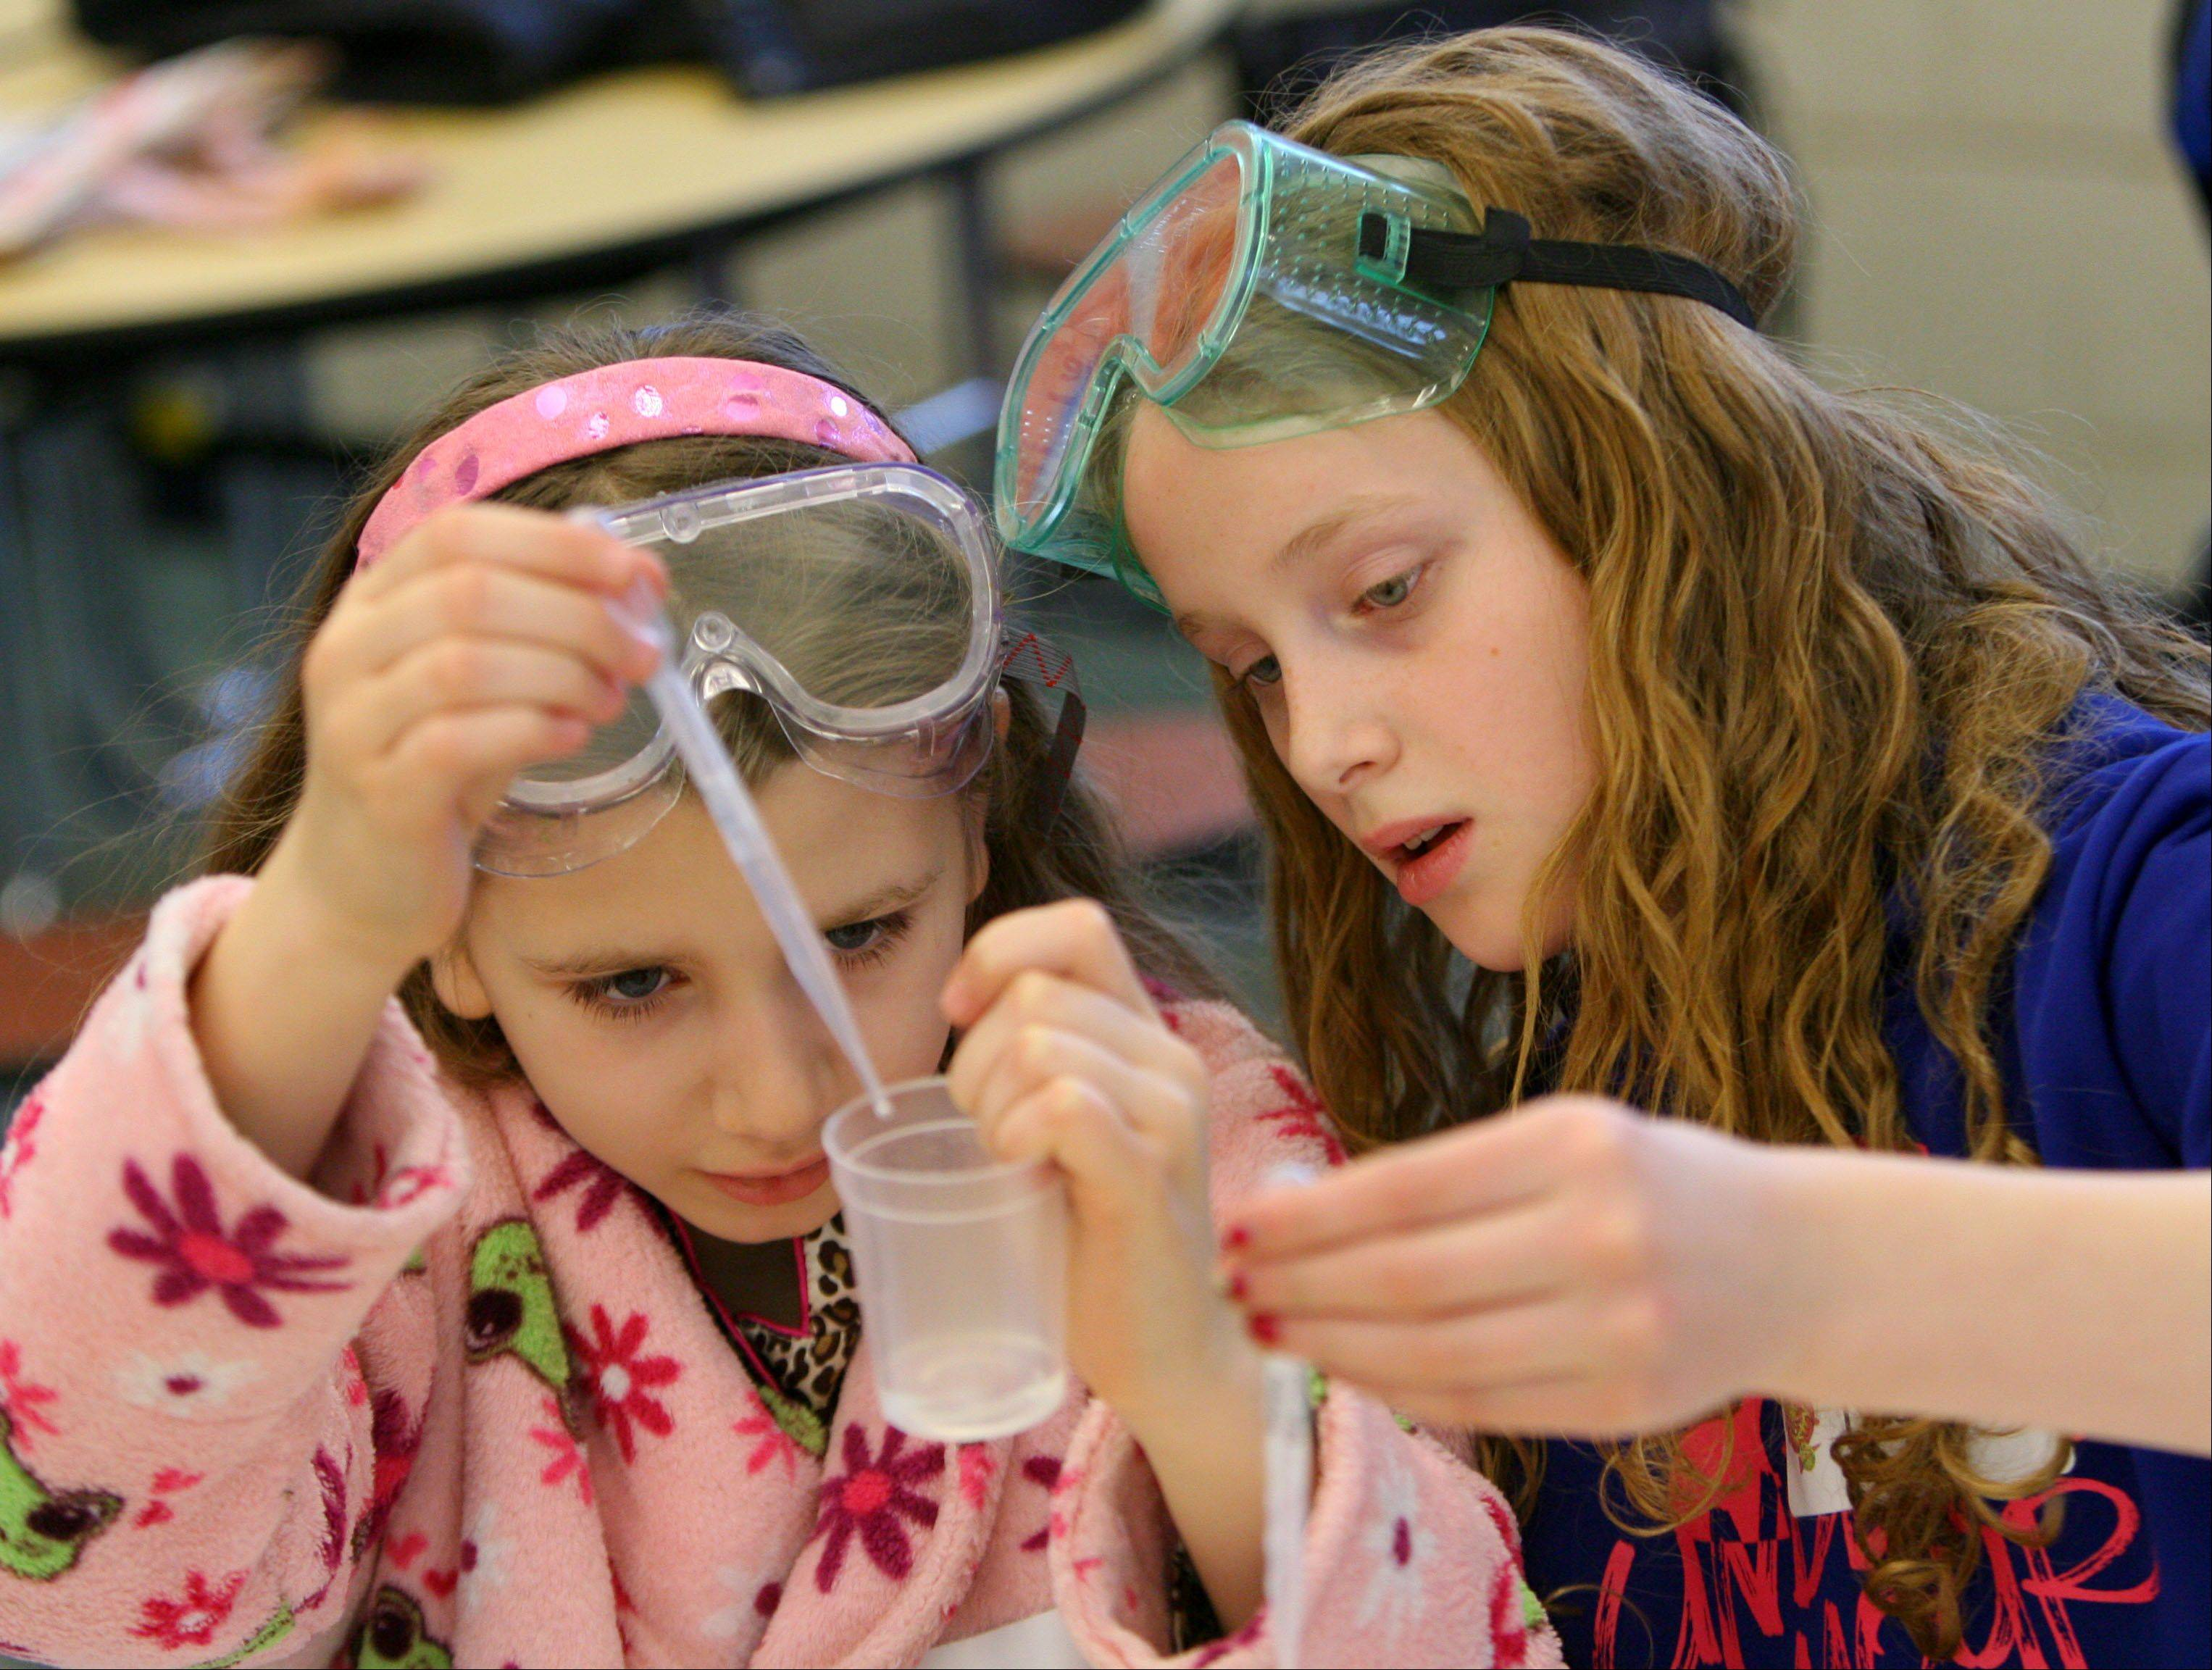 Emily Celaric, left, and Maeve Rattin measure a solution as Copeland Manor fifth graders conduct chemistry experiments with parent volunteers Thursday in Libertyville.